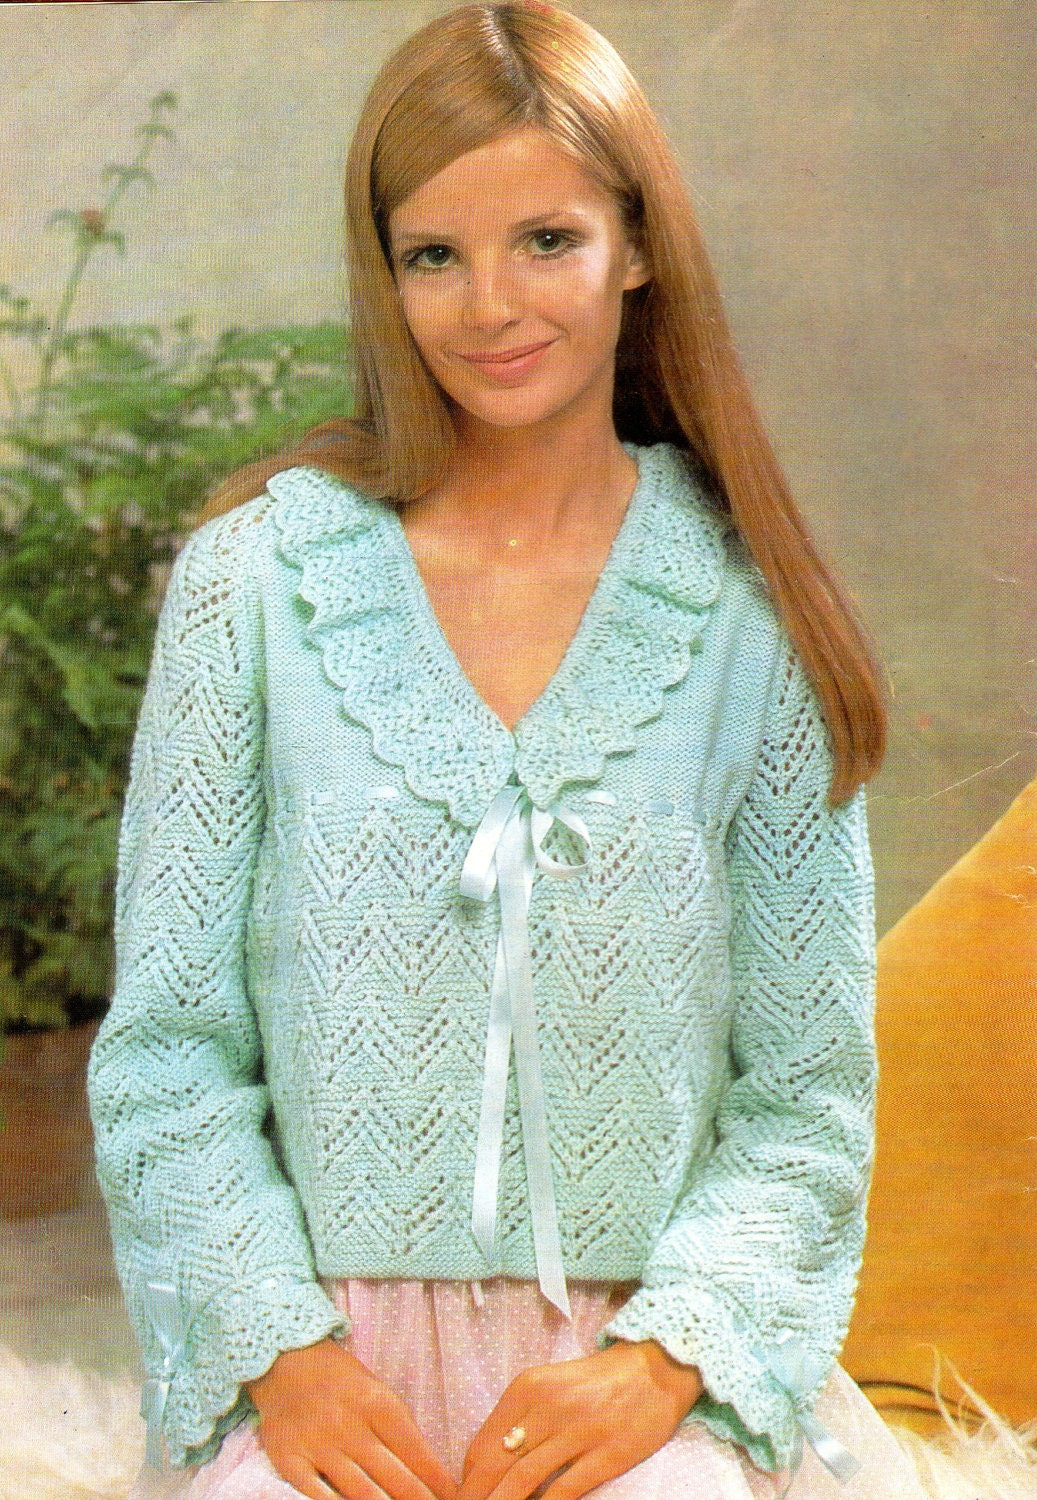 Bed Jacket Vintage Knitting Pattern Pdf by PamoolahVintage